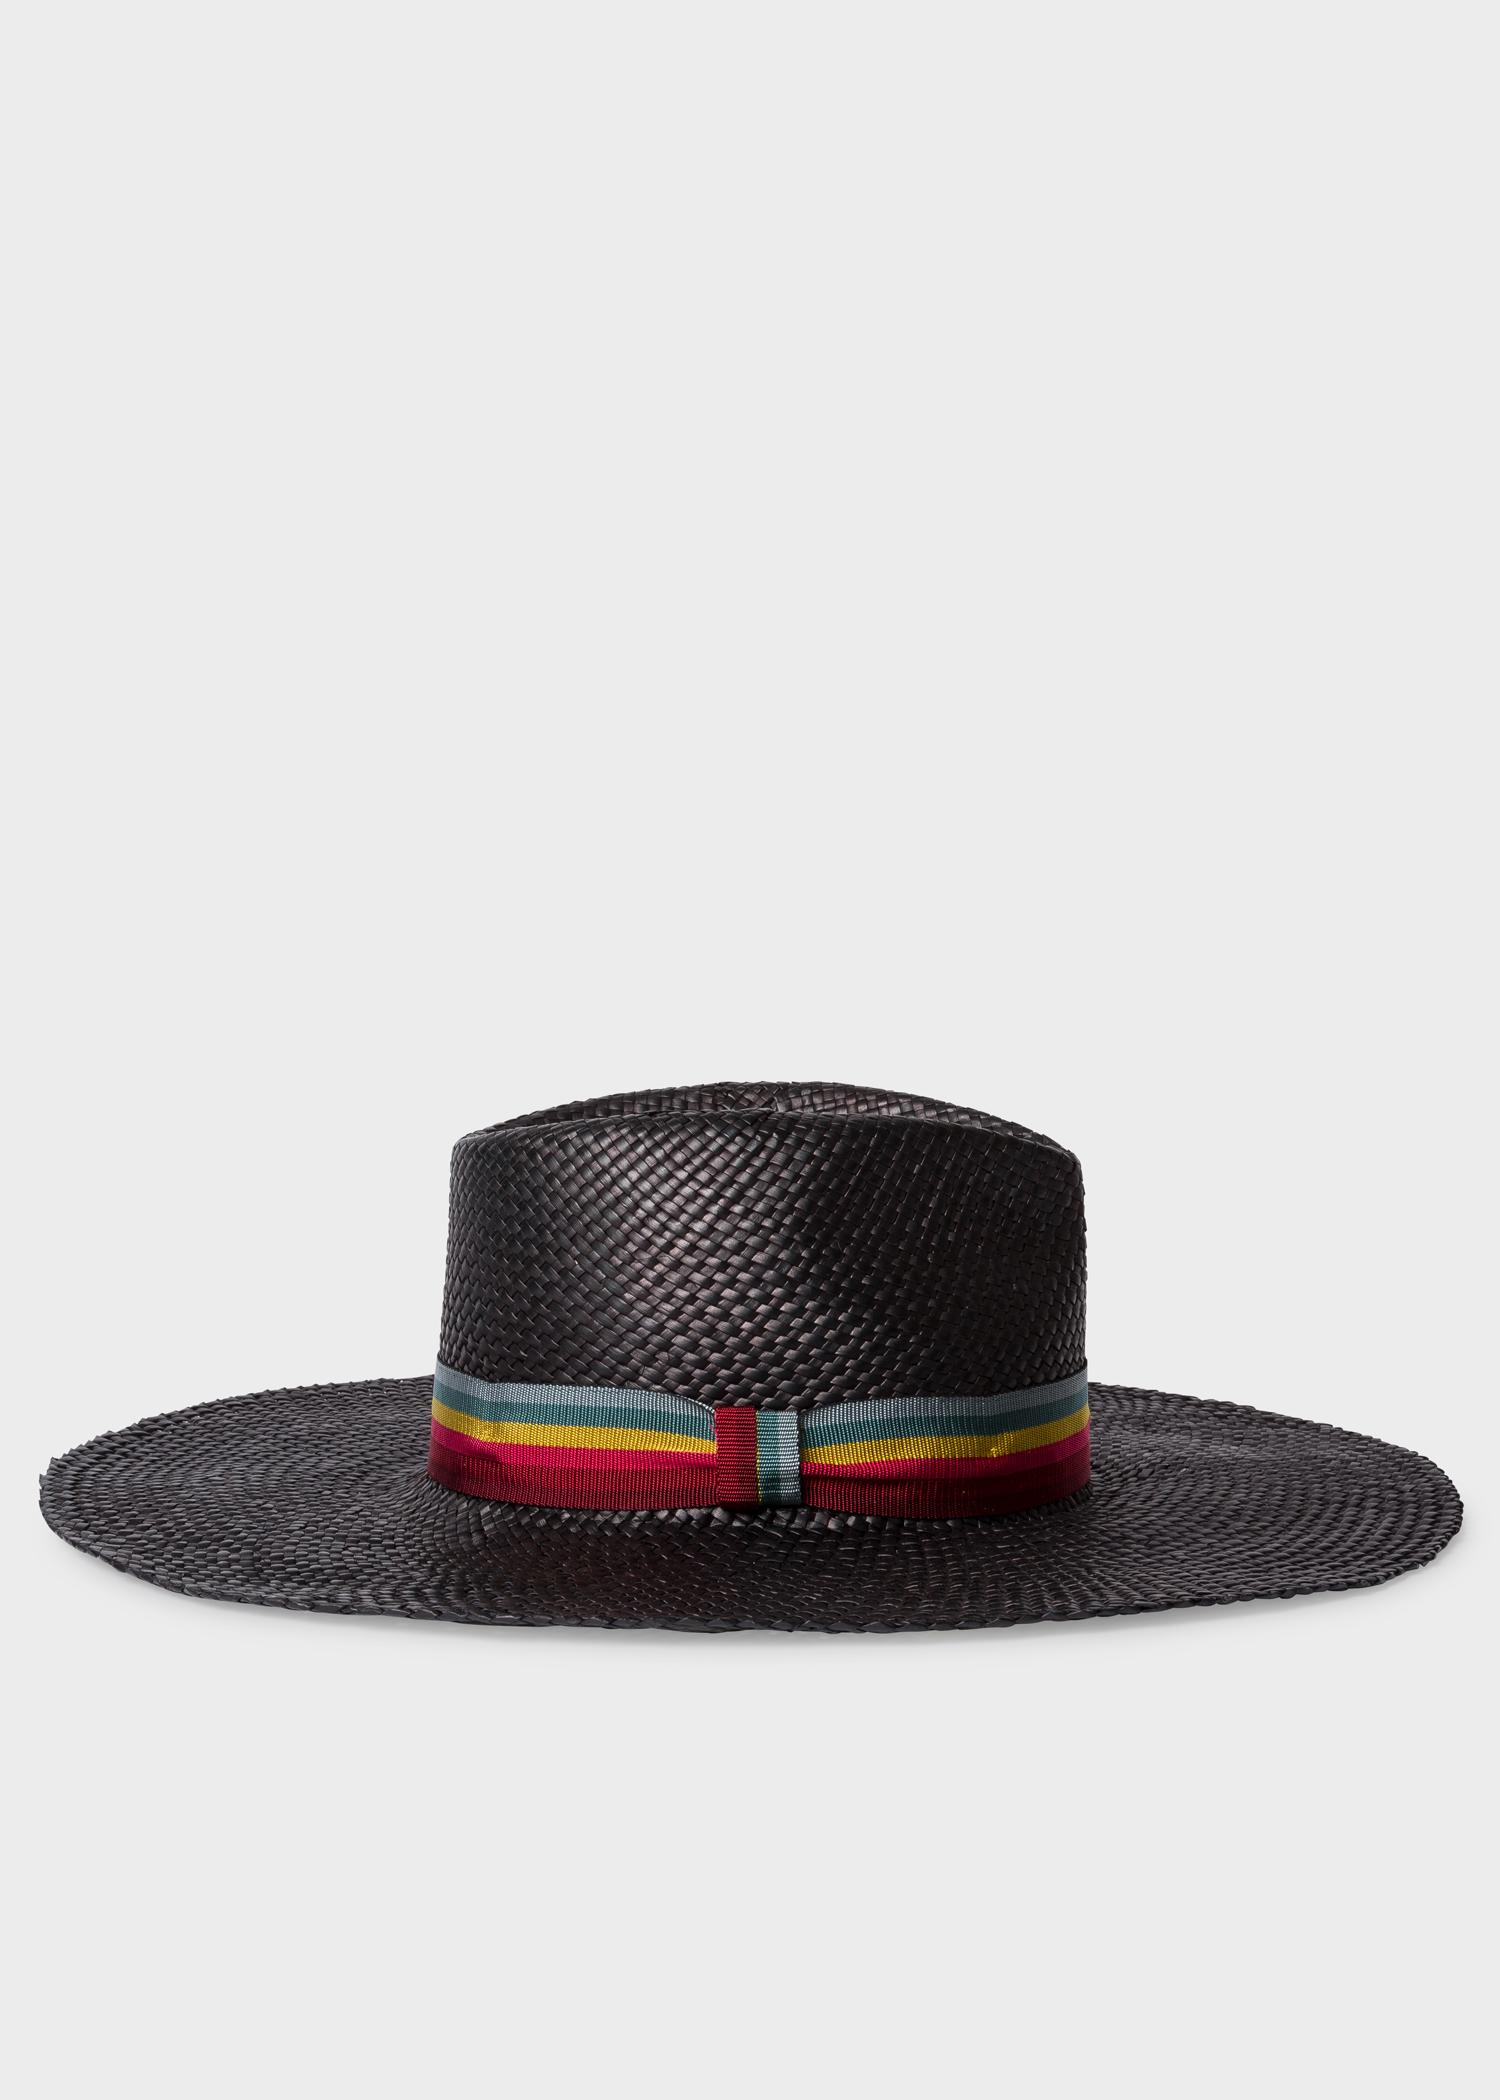 204729be Lyst - Paul Smith Black Woven Fedora Hat With 'swirl-stripe' Band in ...